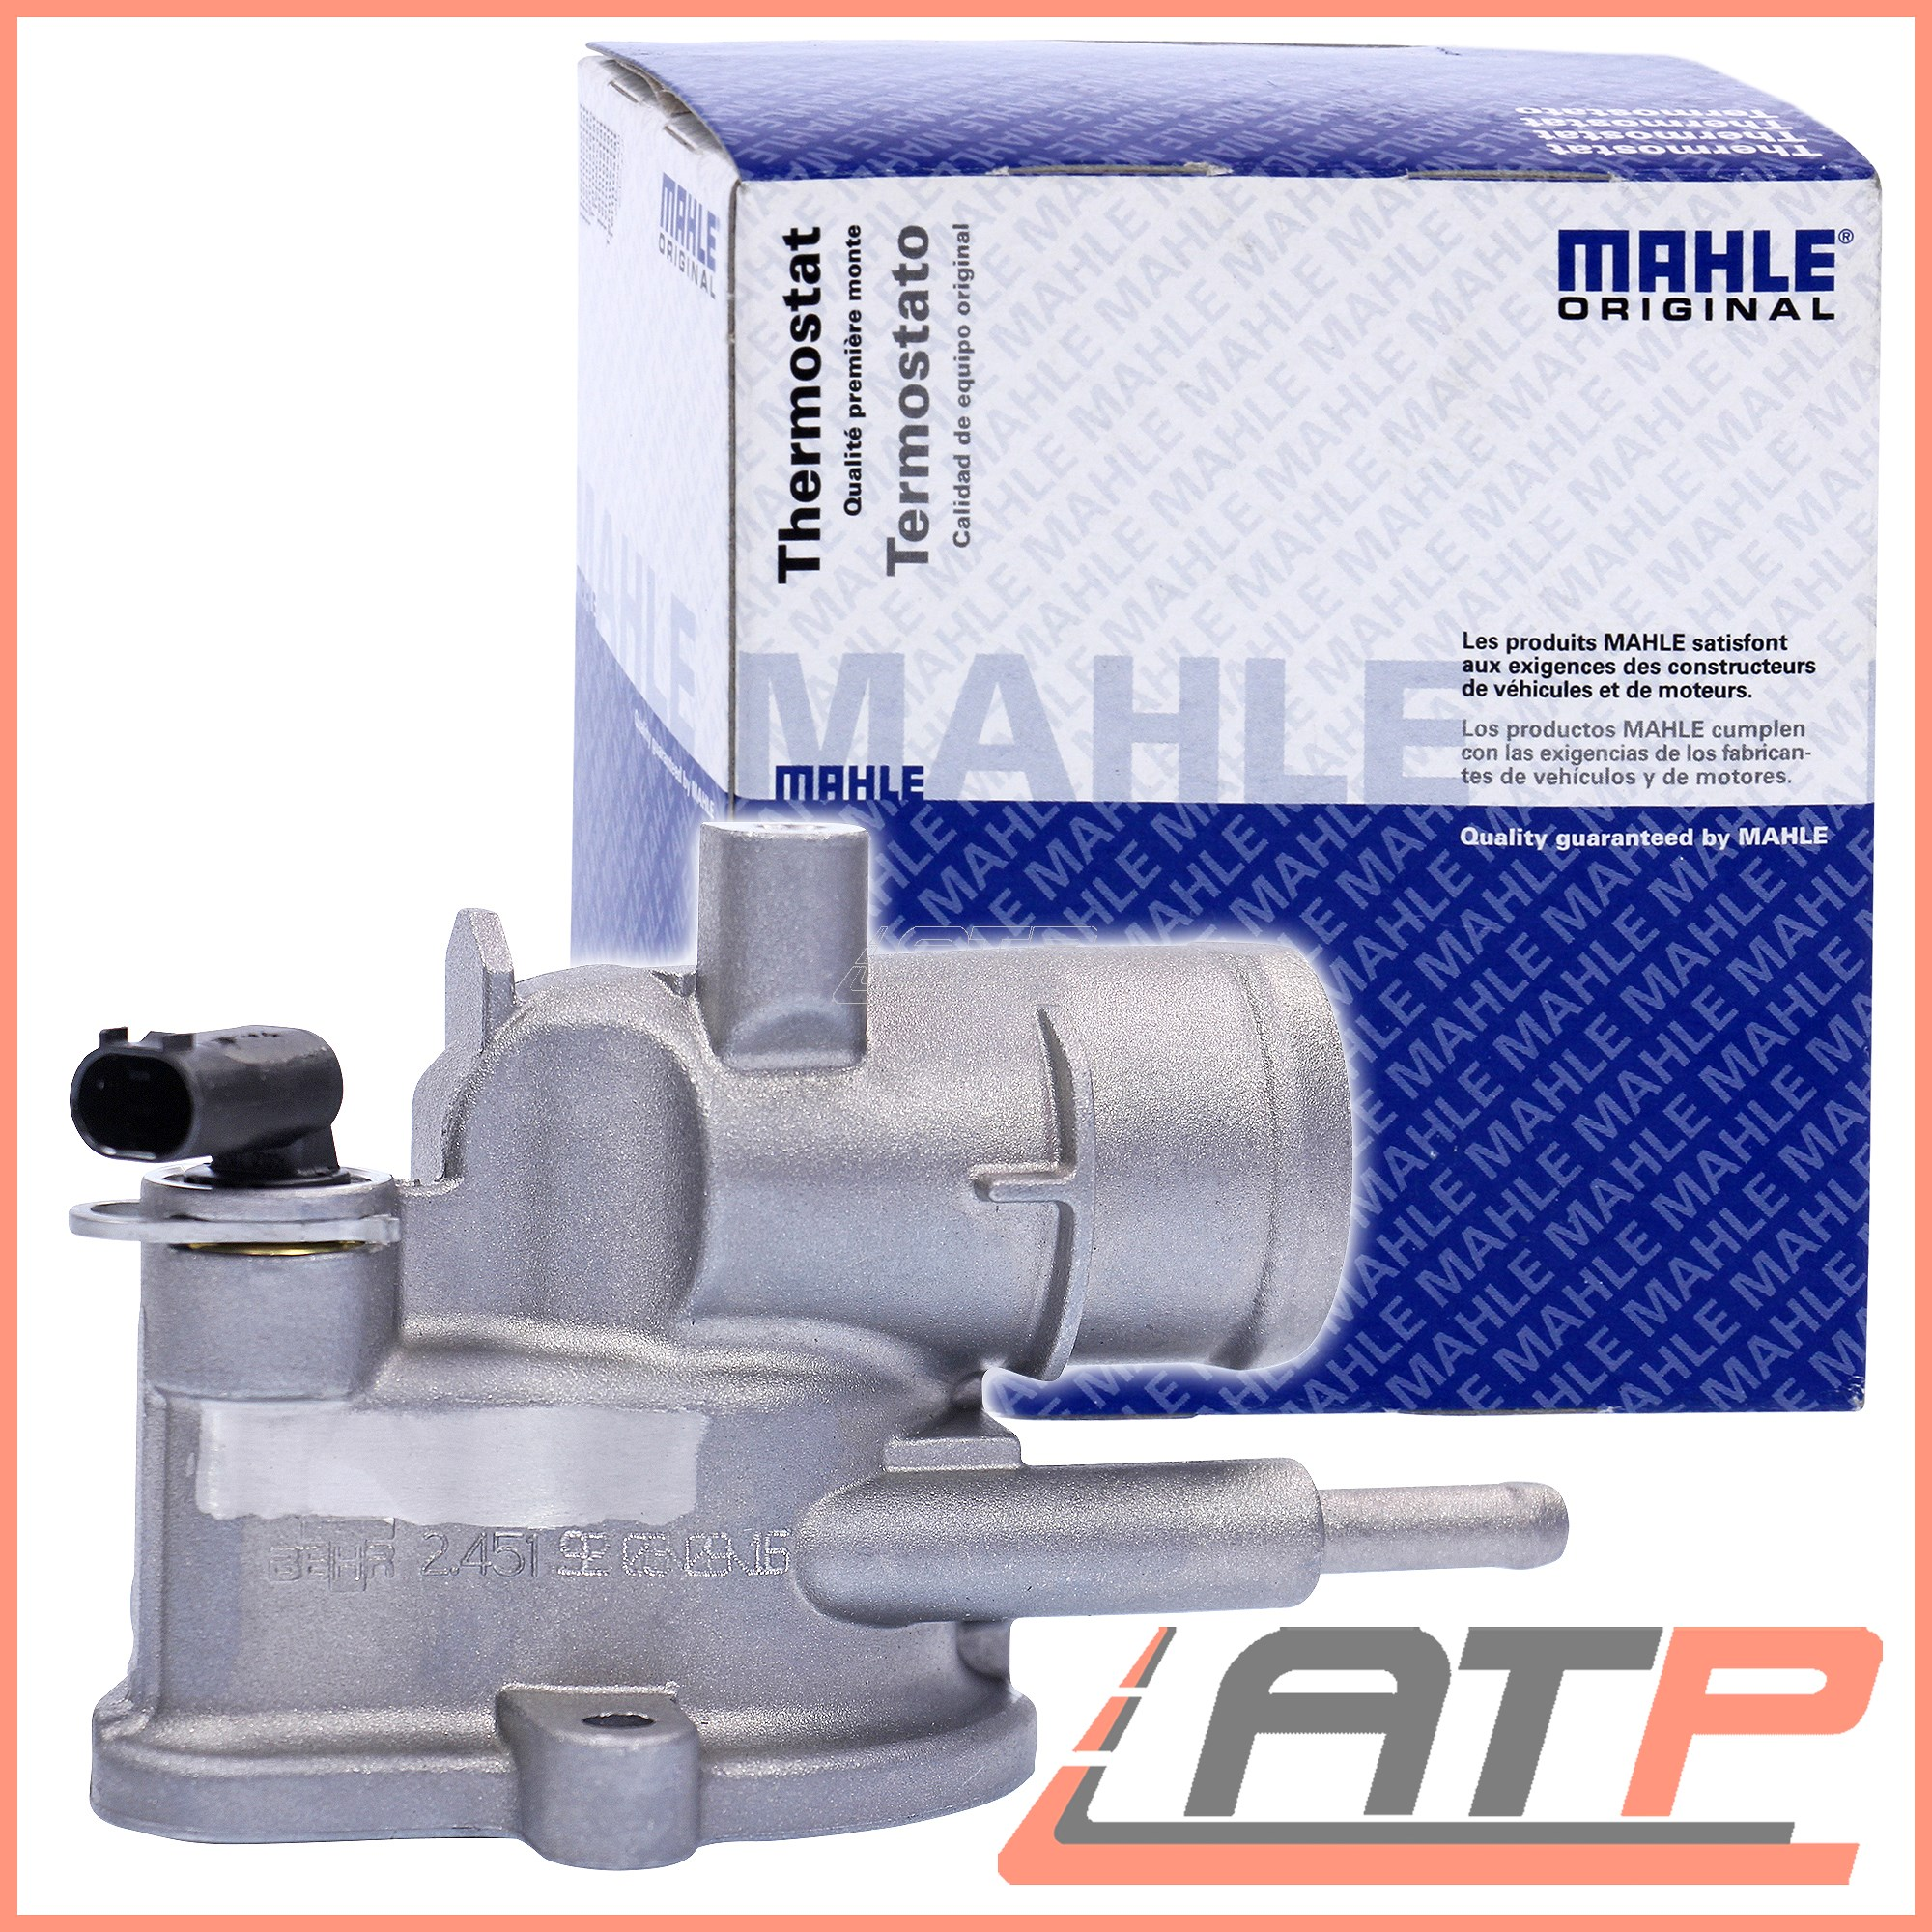 Details about BEHR/MAHLE THERMOSTAT MERCEDES S-CLASS W220 320